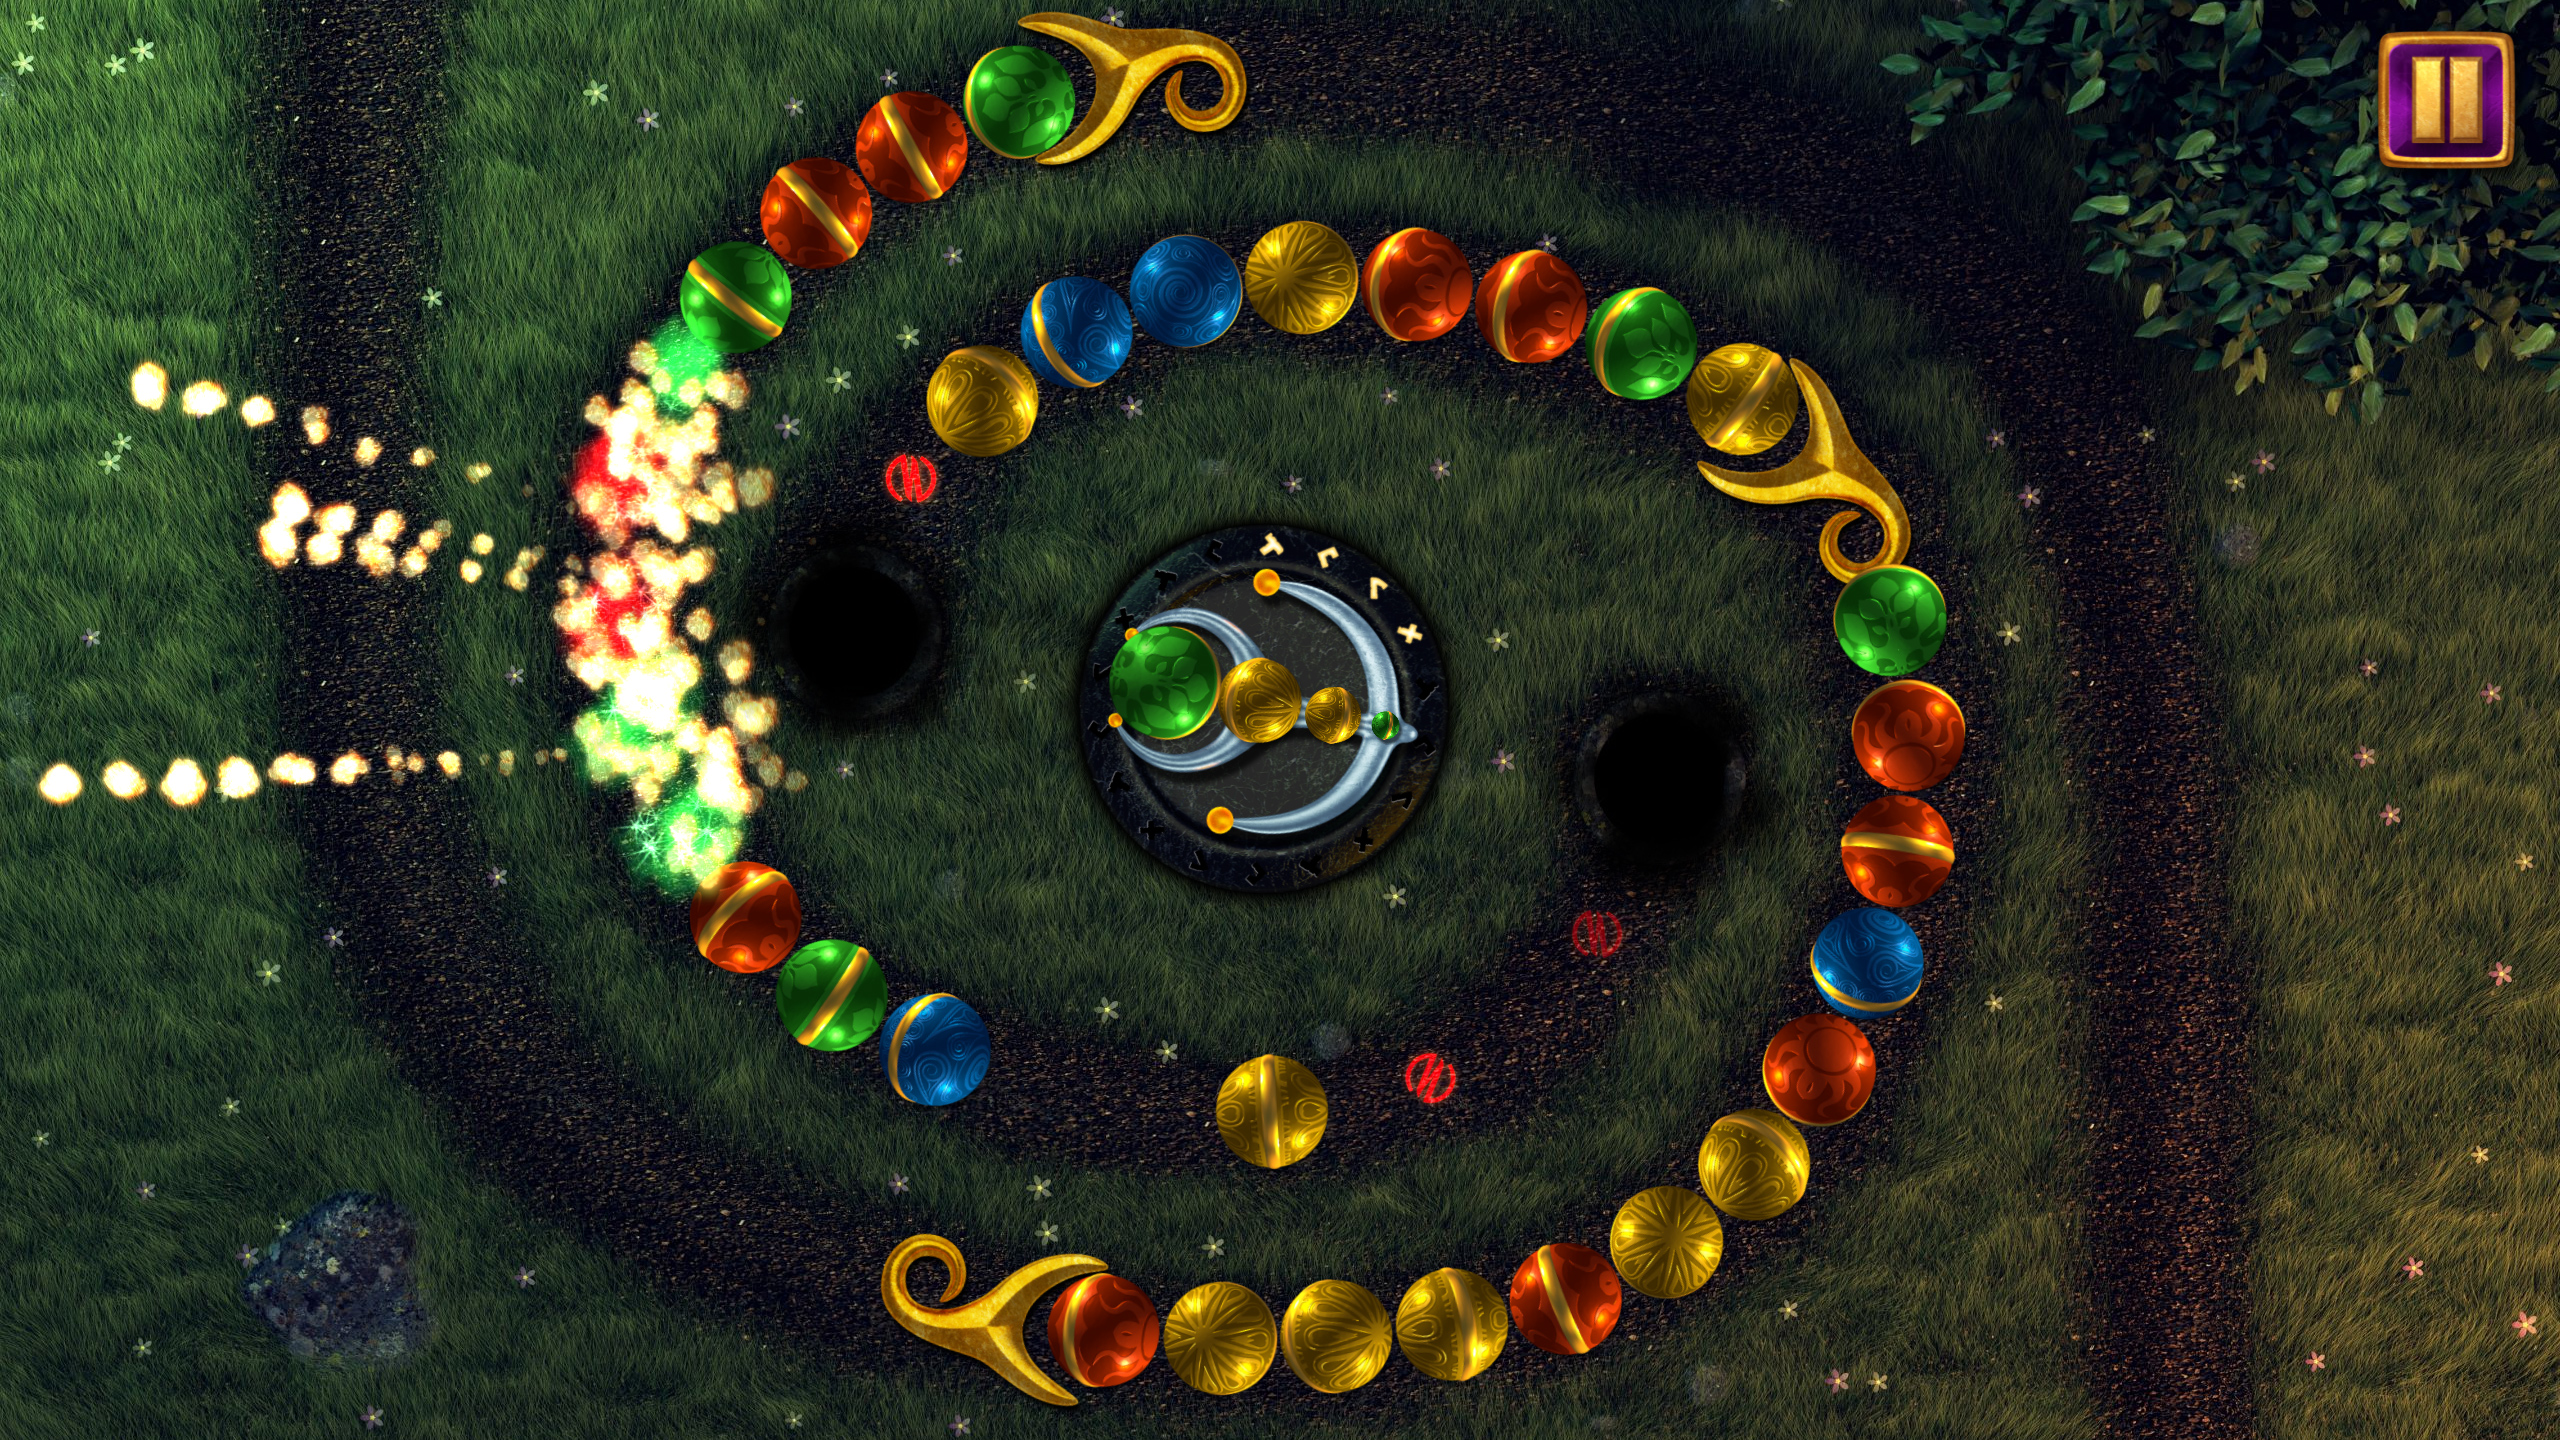 Match-three marble shooter follow-up Sparkle 2 rolling onto iOS in June